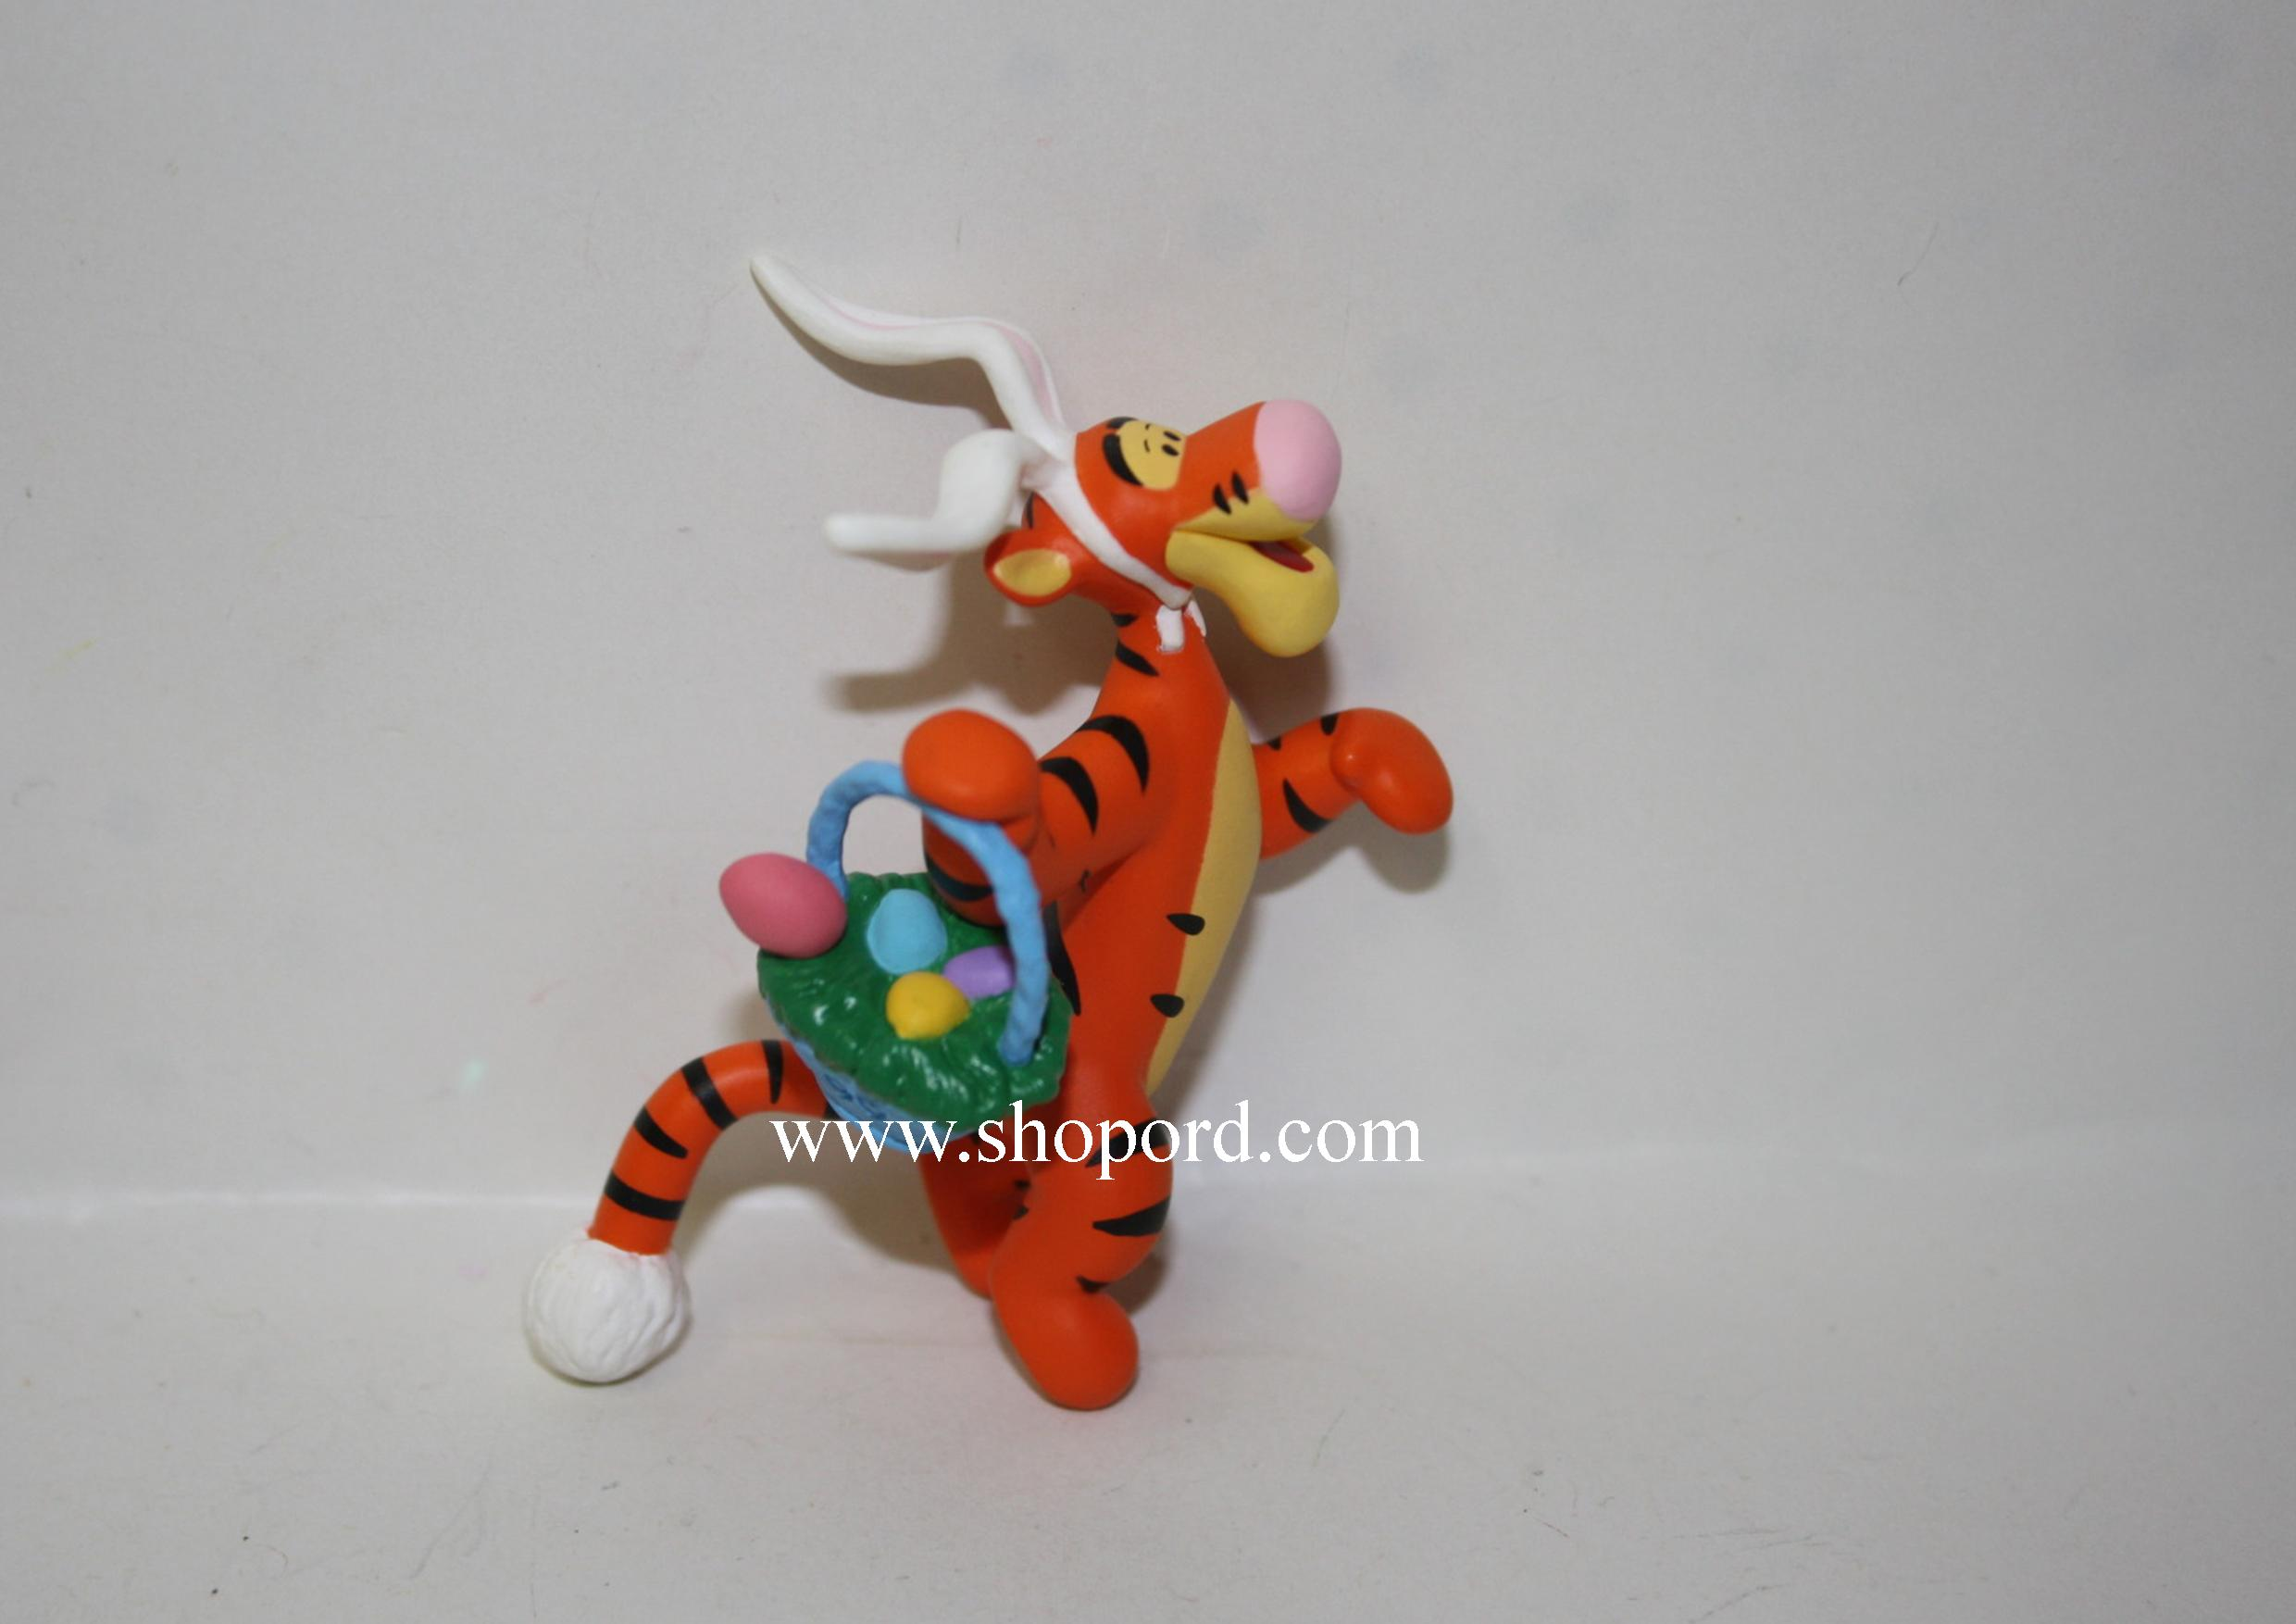 Hallmark 1999 Tiggerific Easter Delivery Spring Ornament Winnie The Pooh QEO8359 Damaged Box